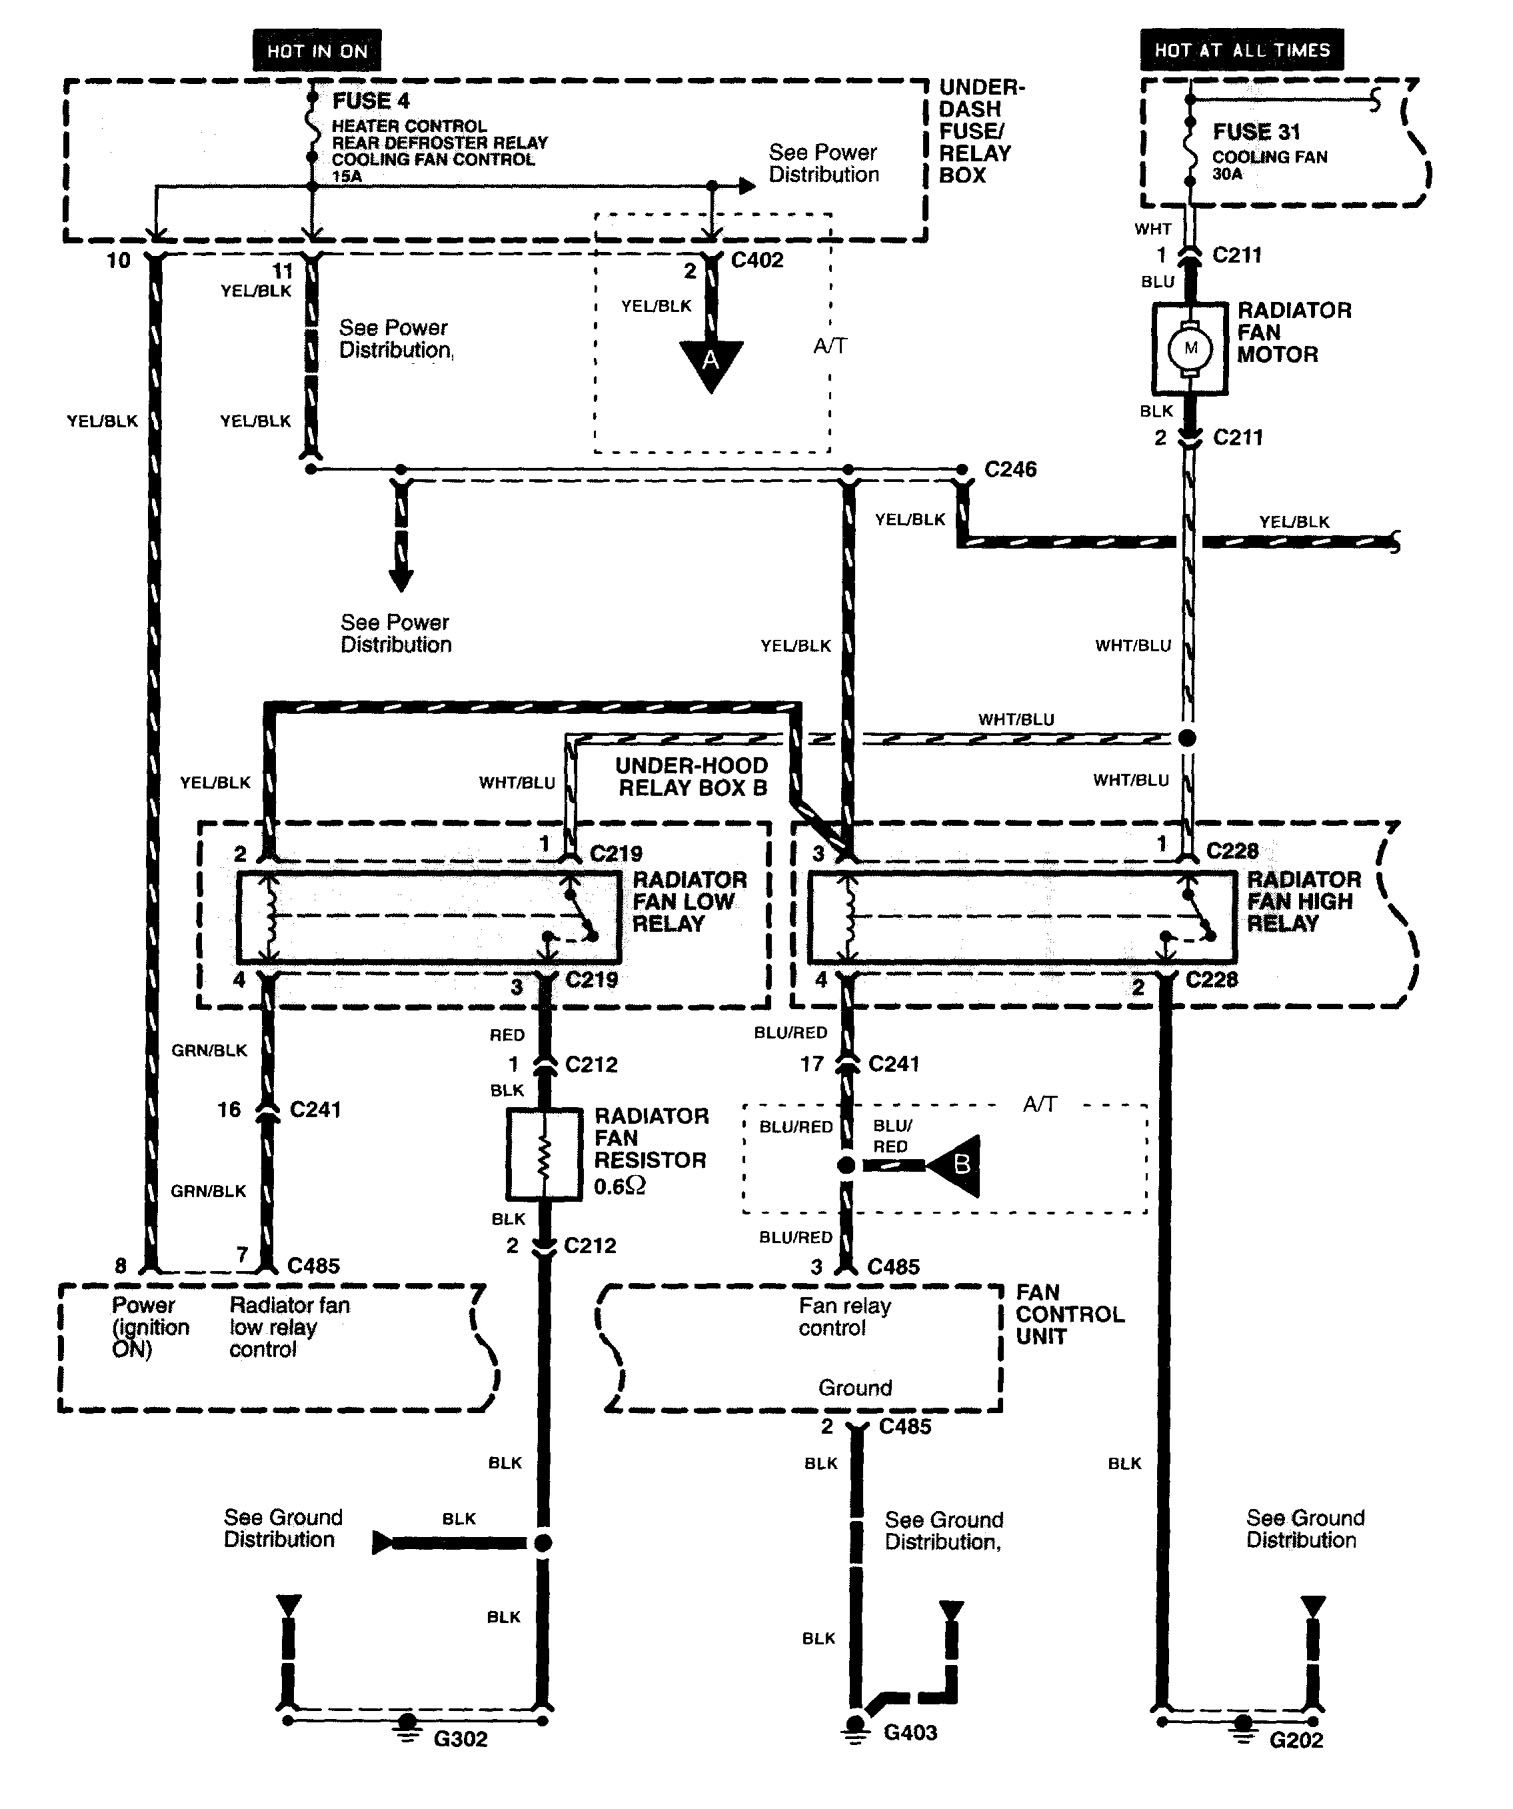 Acura NSX (1997 - 2005) - wiring diagrams - cooling fans ... on